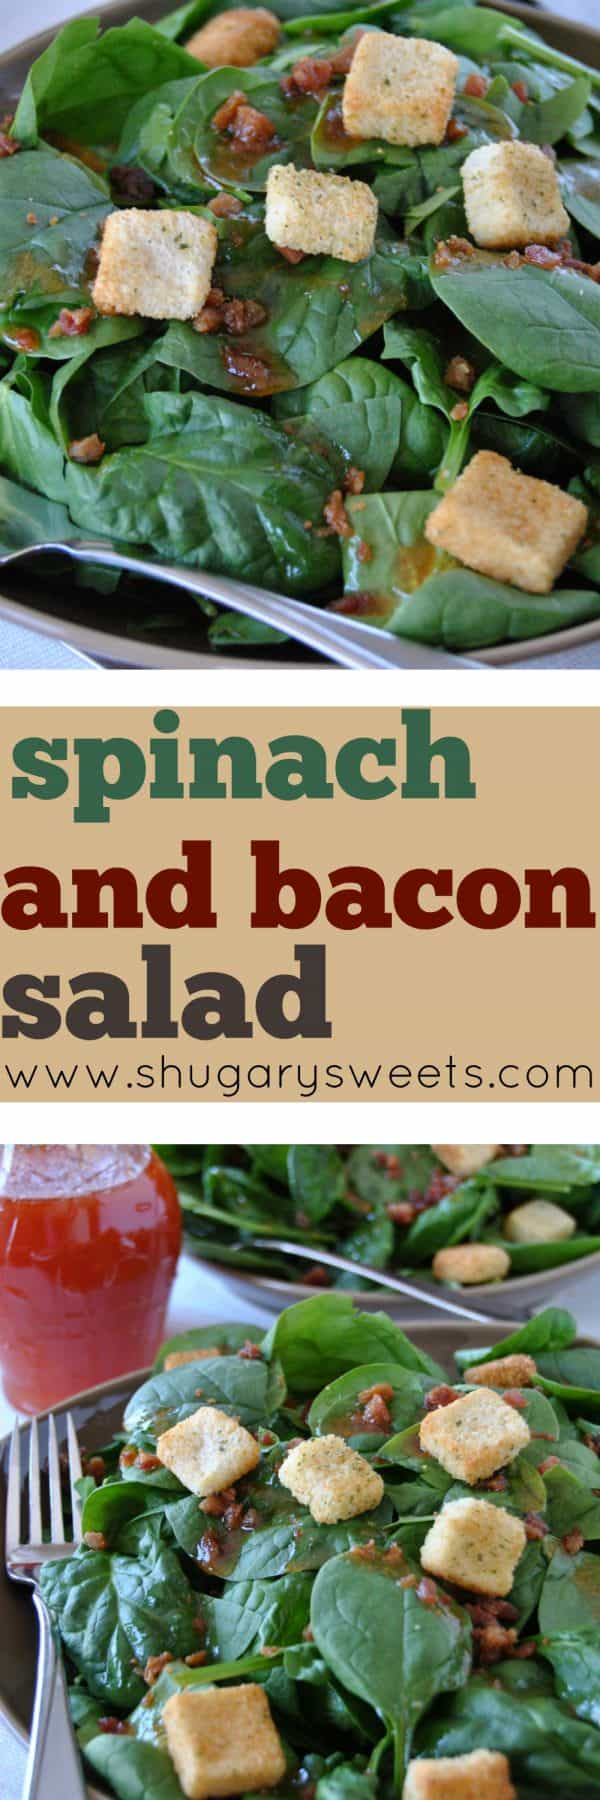 This delicious Spinach and Bacon Salad is a breeze to prepare! The sweet dressing with the salty bacon keeps you wanting more!